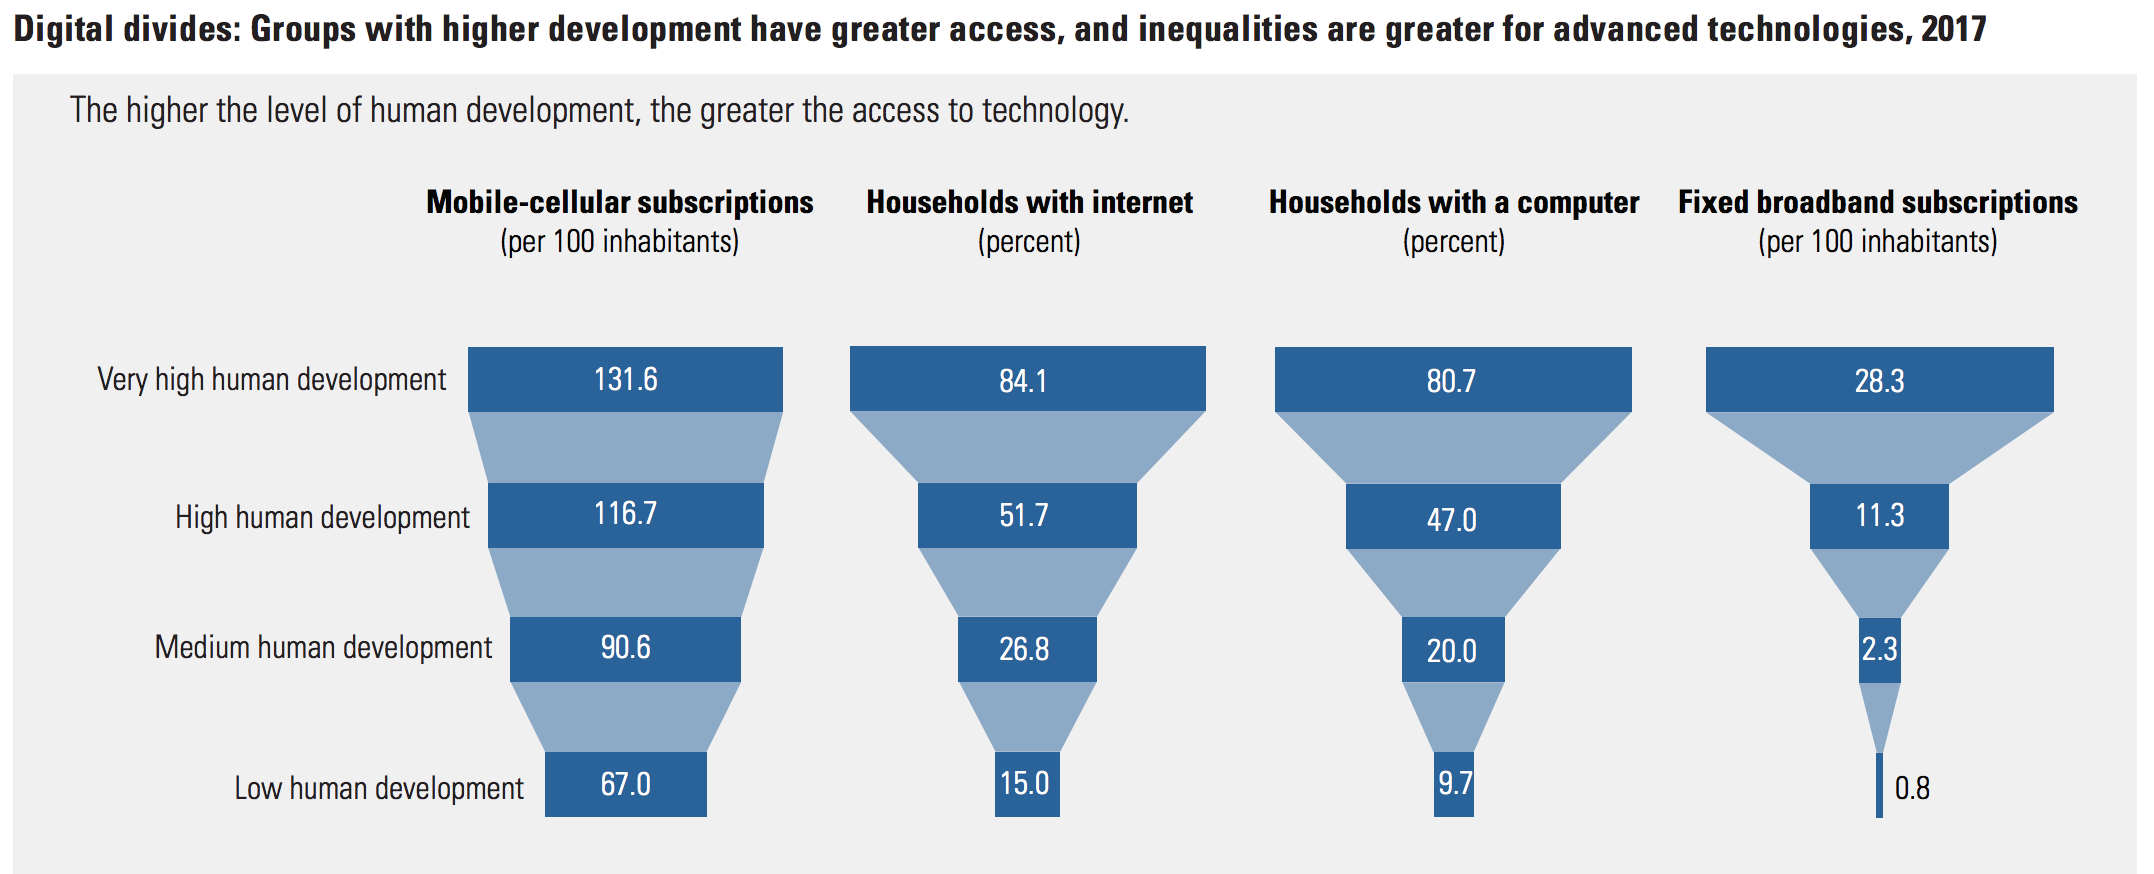 Digital divides: Groups with higher development have greater access, and inequalities are greater for advanced technologies, 2017